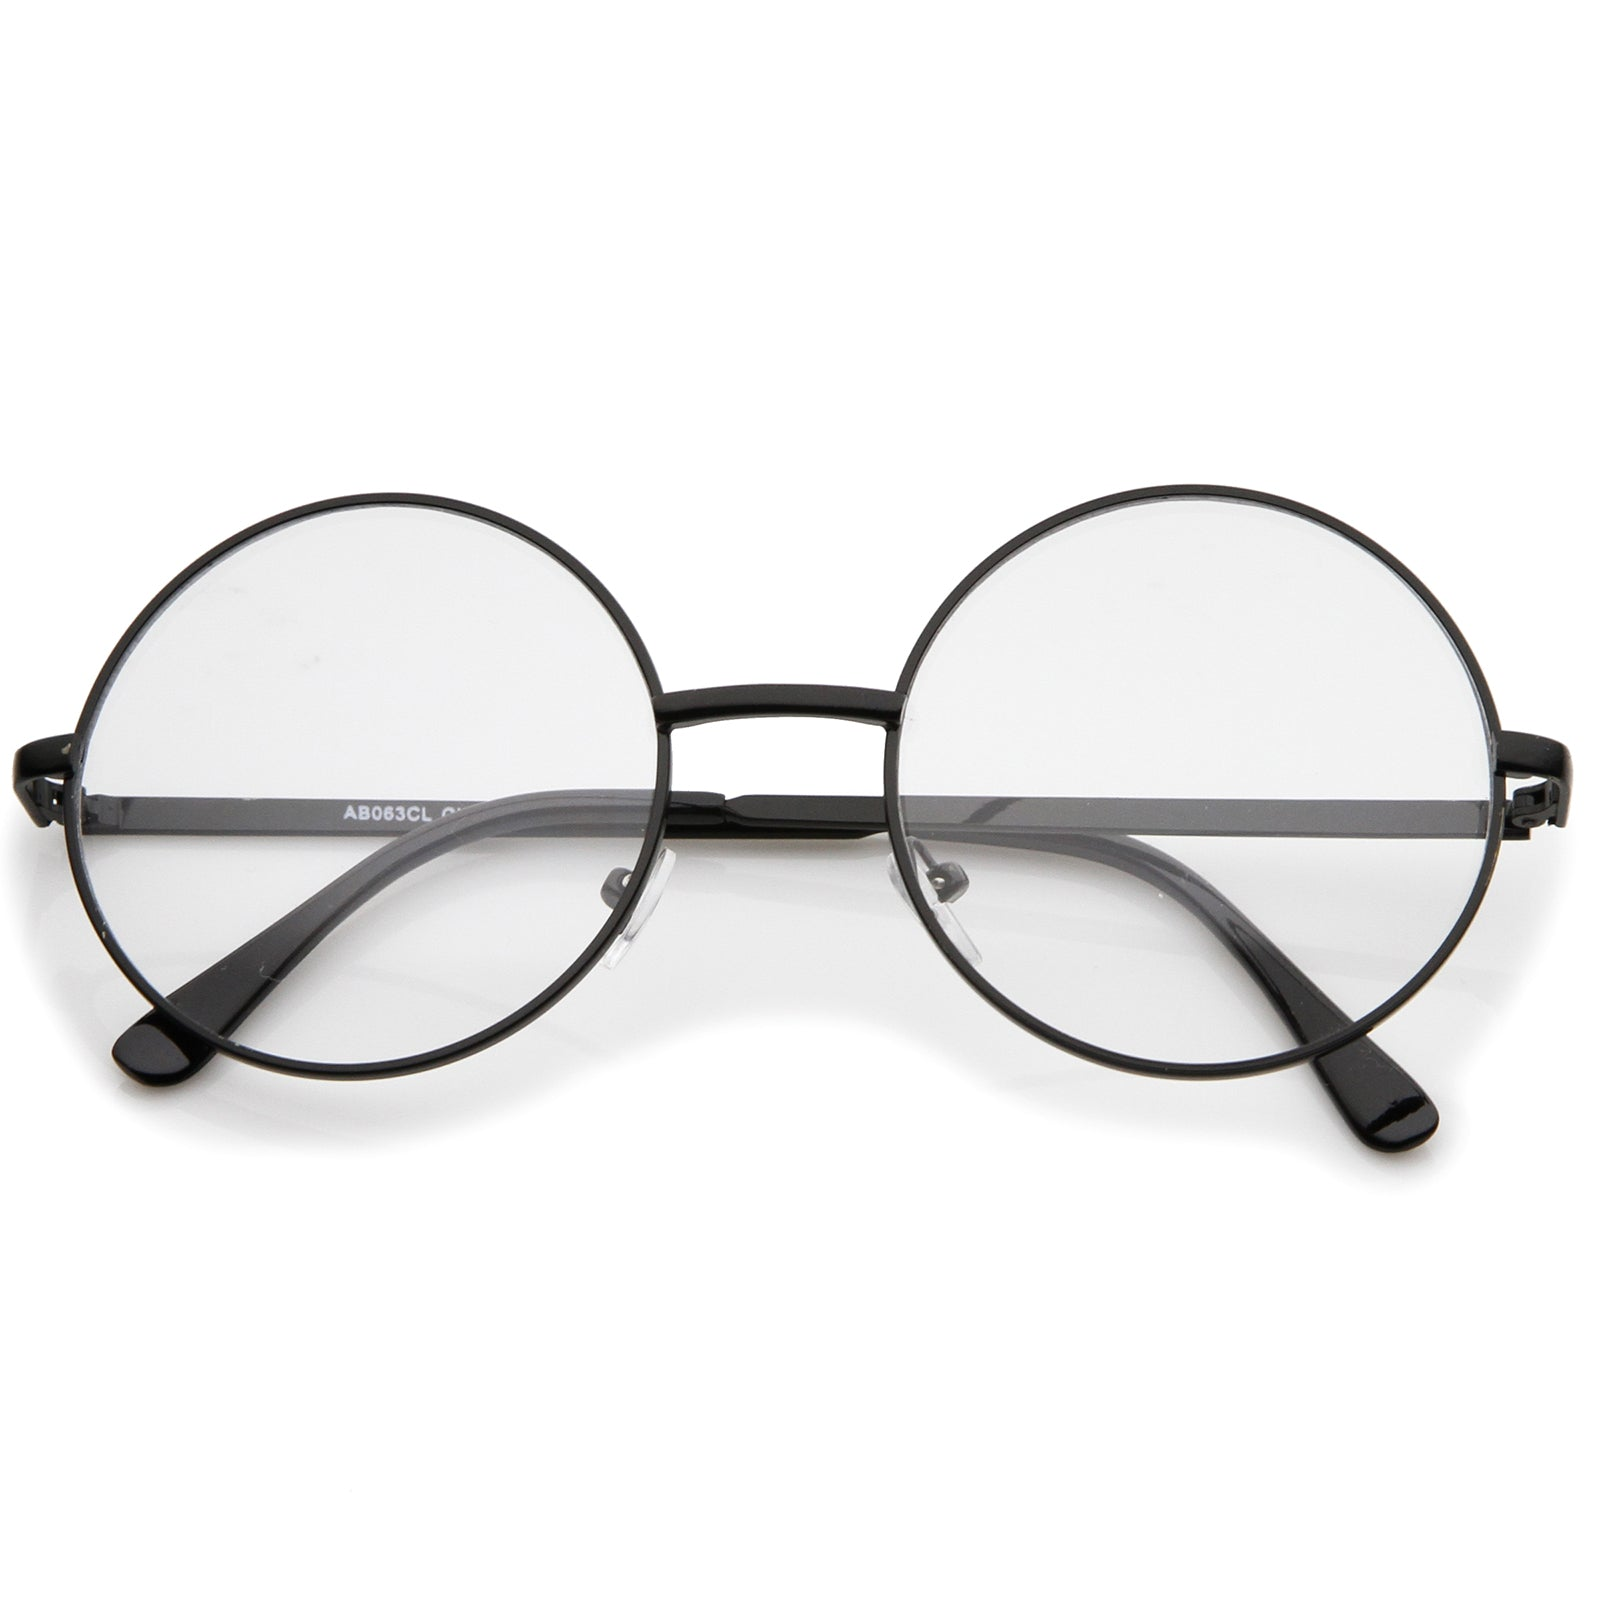 c240ea7a3d Retro Lennon Style Mid Size Metal Frame Clear Lens Round Glasses ...